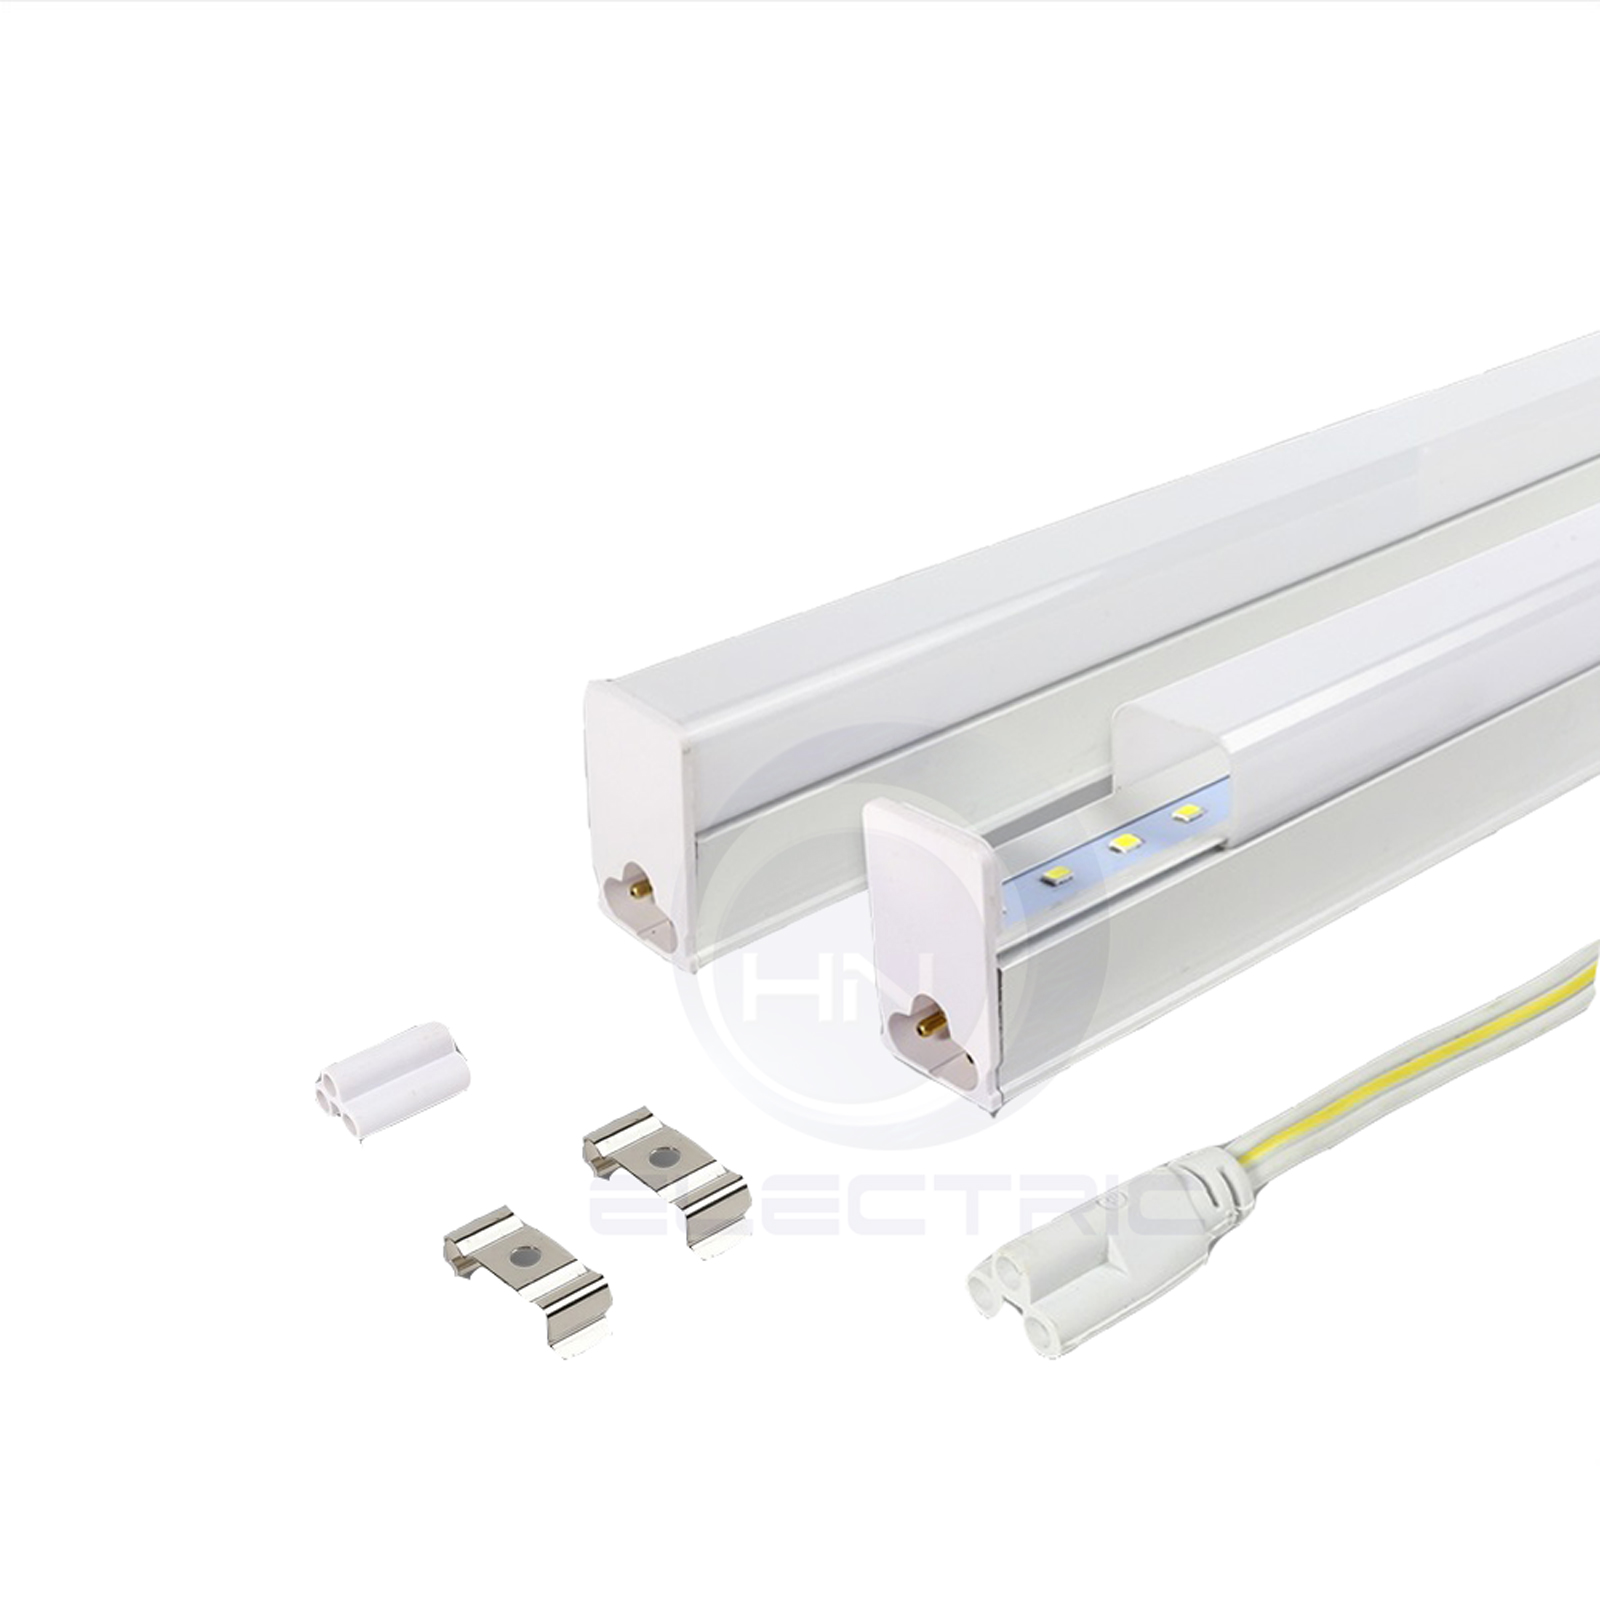 Đèn Tuýt T5 Led 1.2M 16W VT5-16-120-V/TT/T Kingled